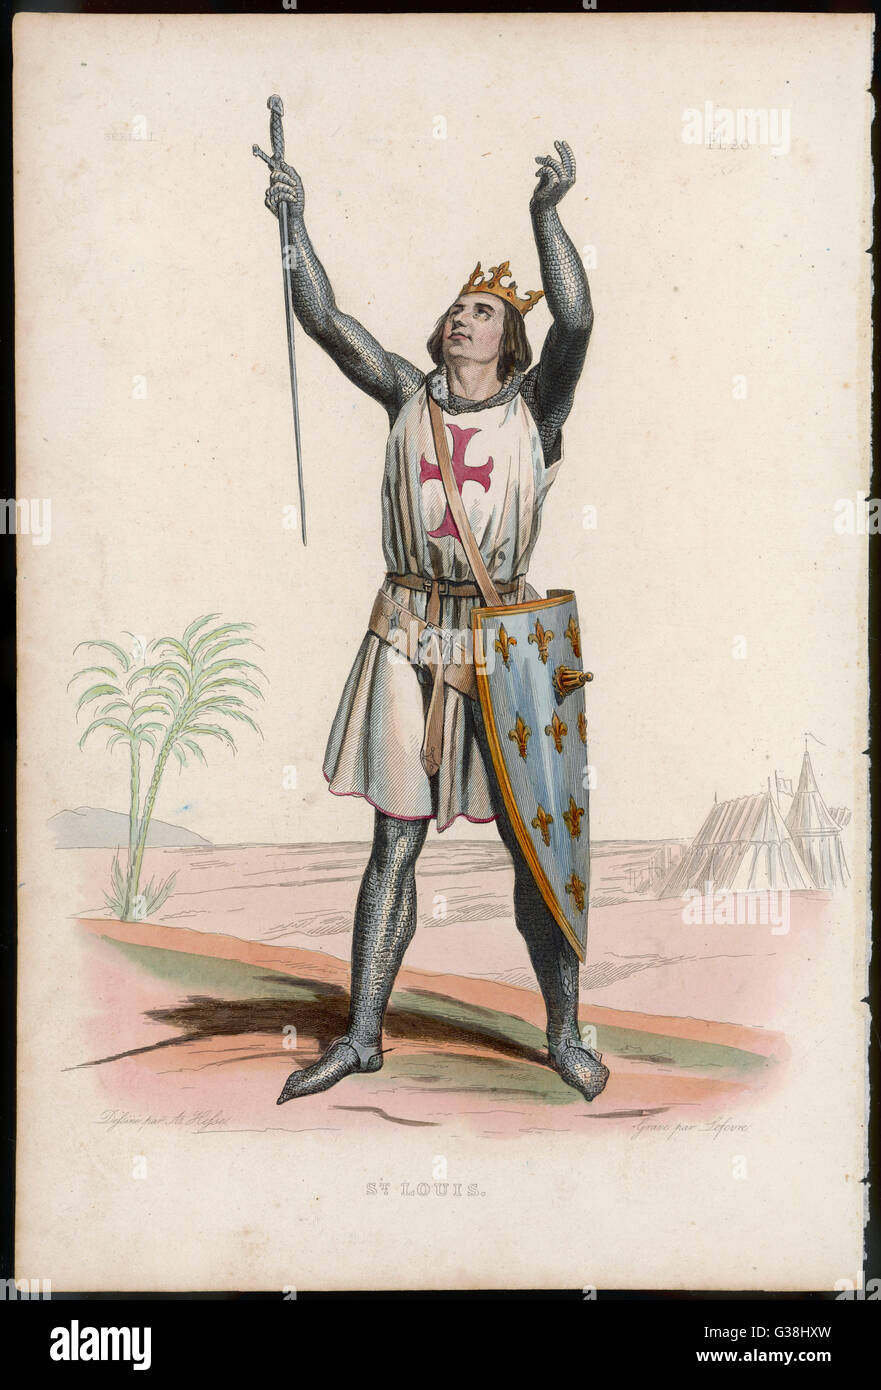 Louis IX, crusader, with his  arms outstretched.         Date: 1248 - Stock Image